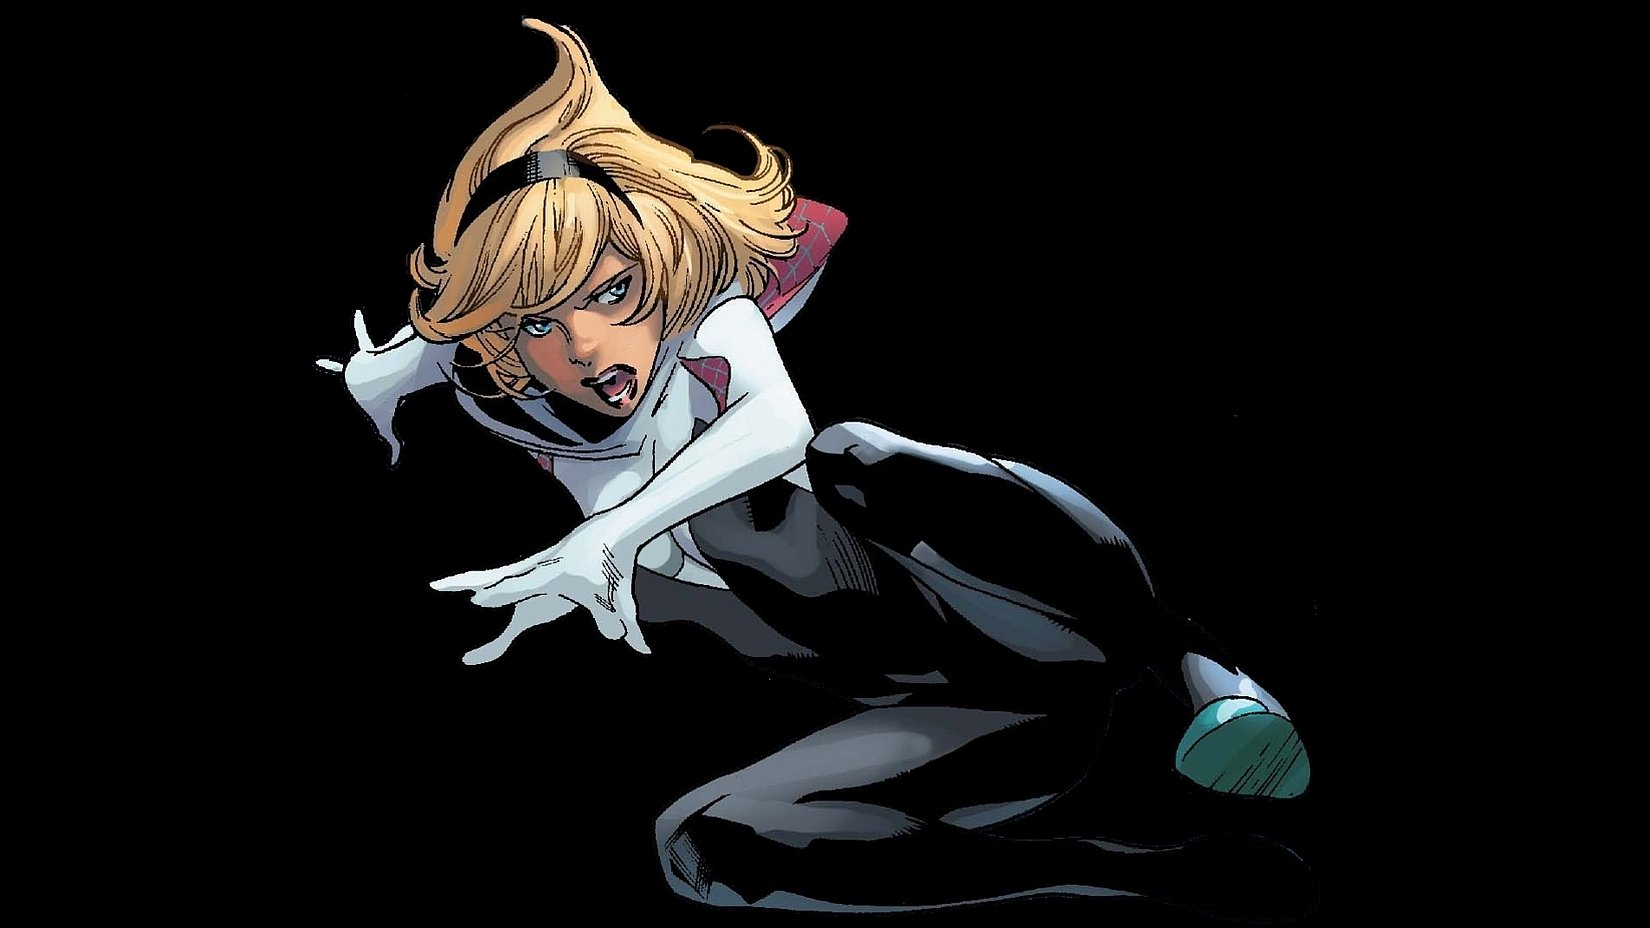 Spider-Gwen Wallpaper and Background Image | 1650x928 | ID ...